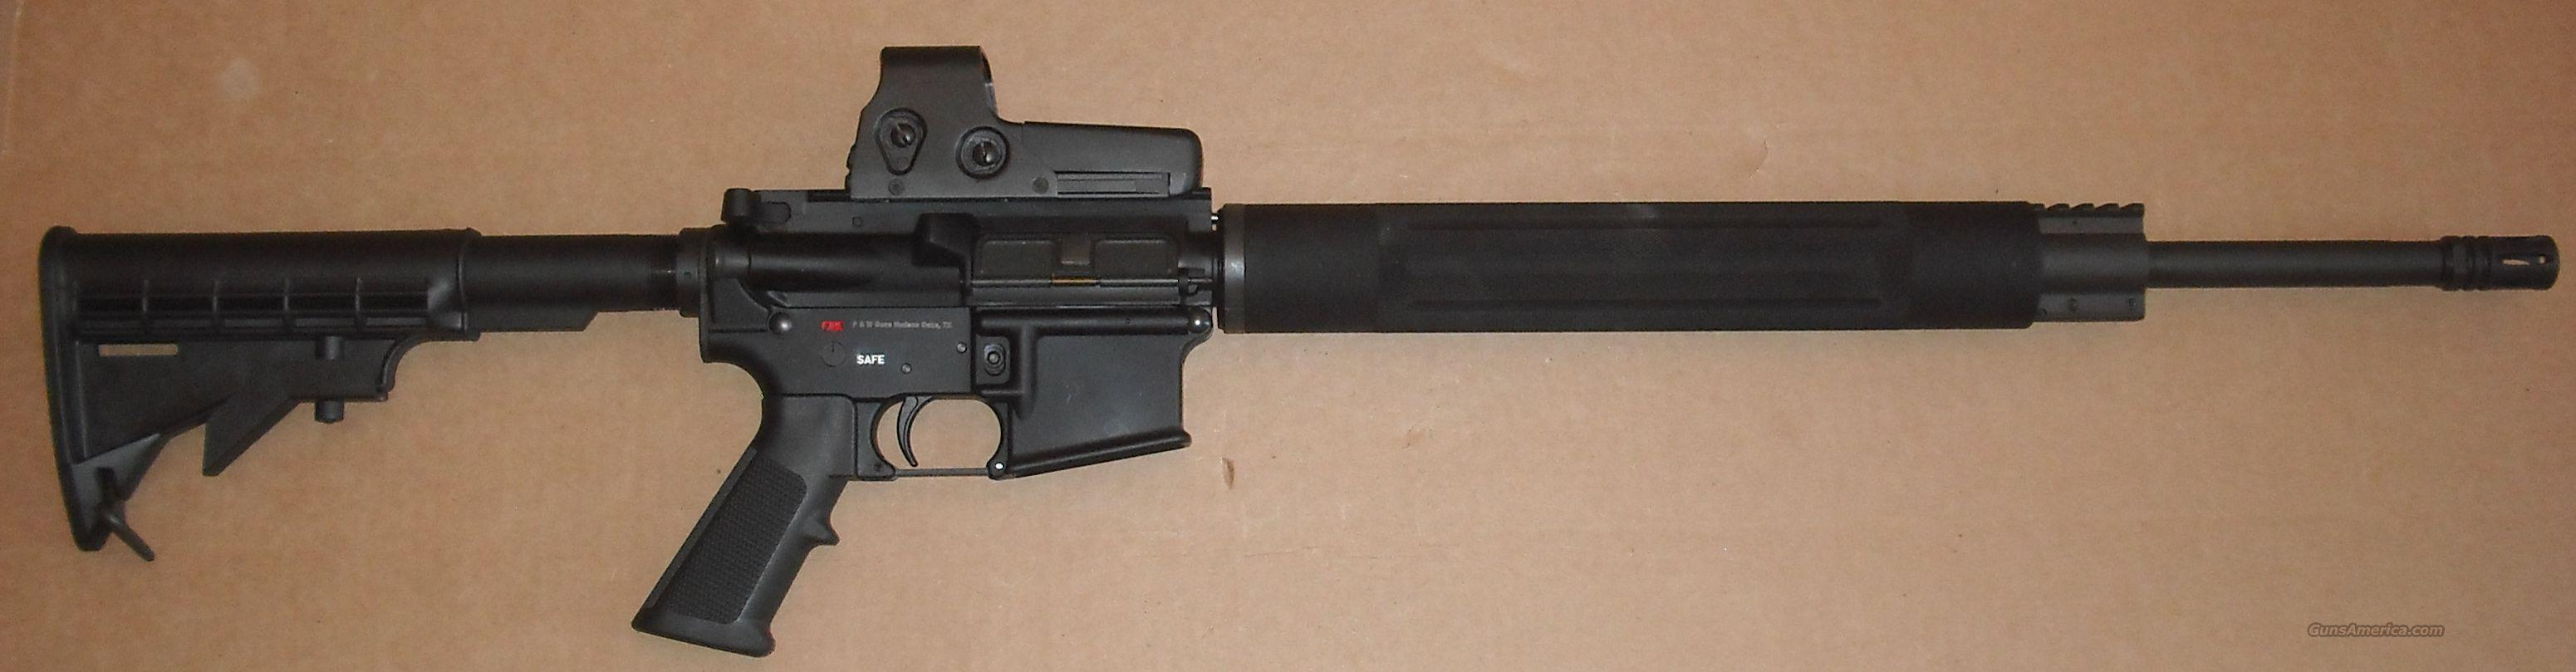 "AR-15 20"" barrel and scope  Guns > Rifles > AR-15 Rifles - Small Manufacturers > Complete Rifle"